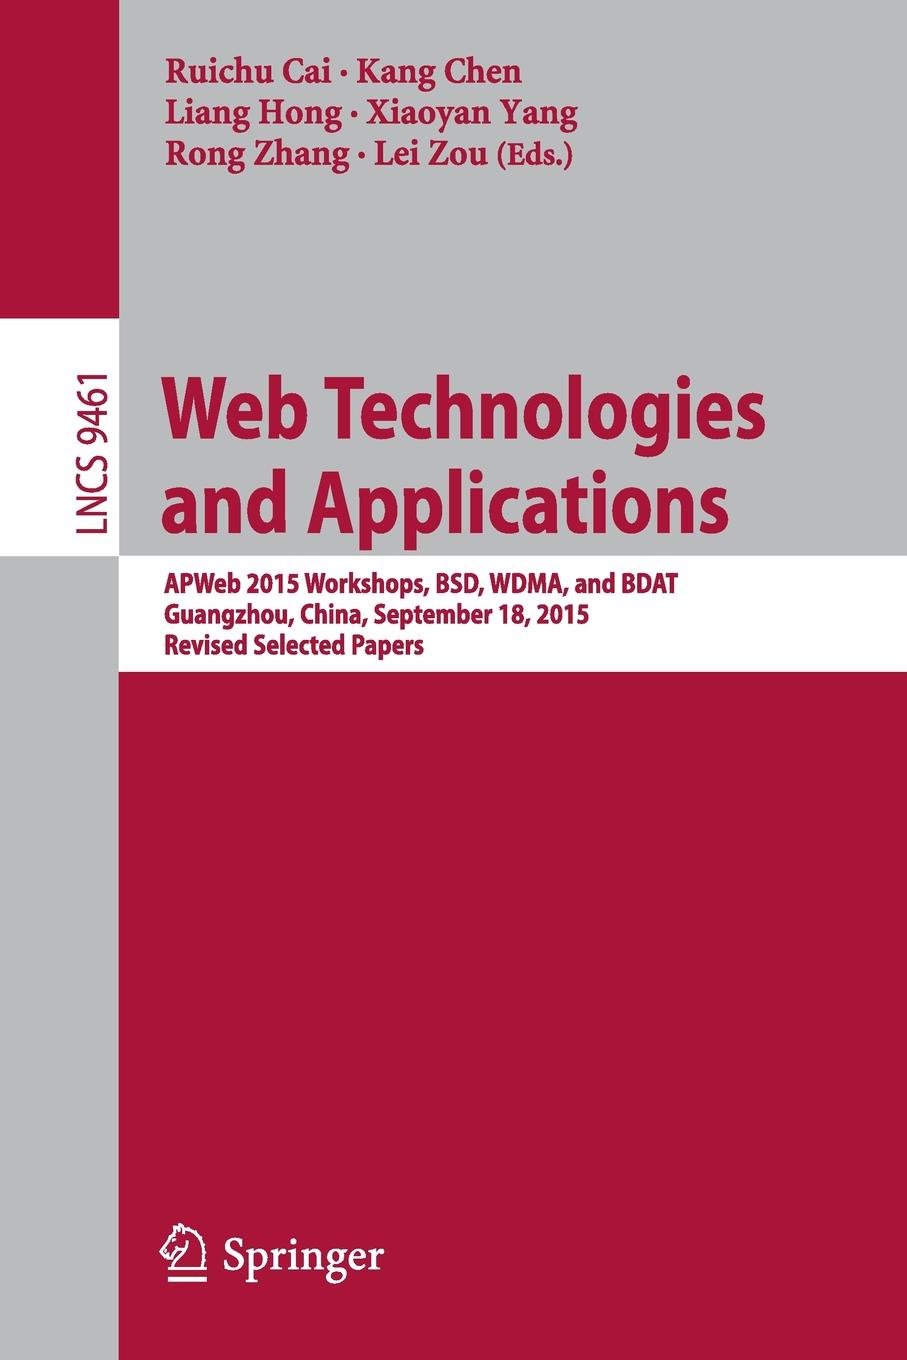 Web Technologies and Applications. APWeb 2015 Workshops, BSD, WDMA, and BDAT, Guangzhou, China, September 18, 2015, Revised Selected Papers snehal joglekar web technologies